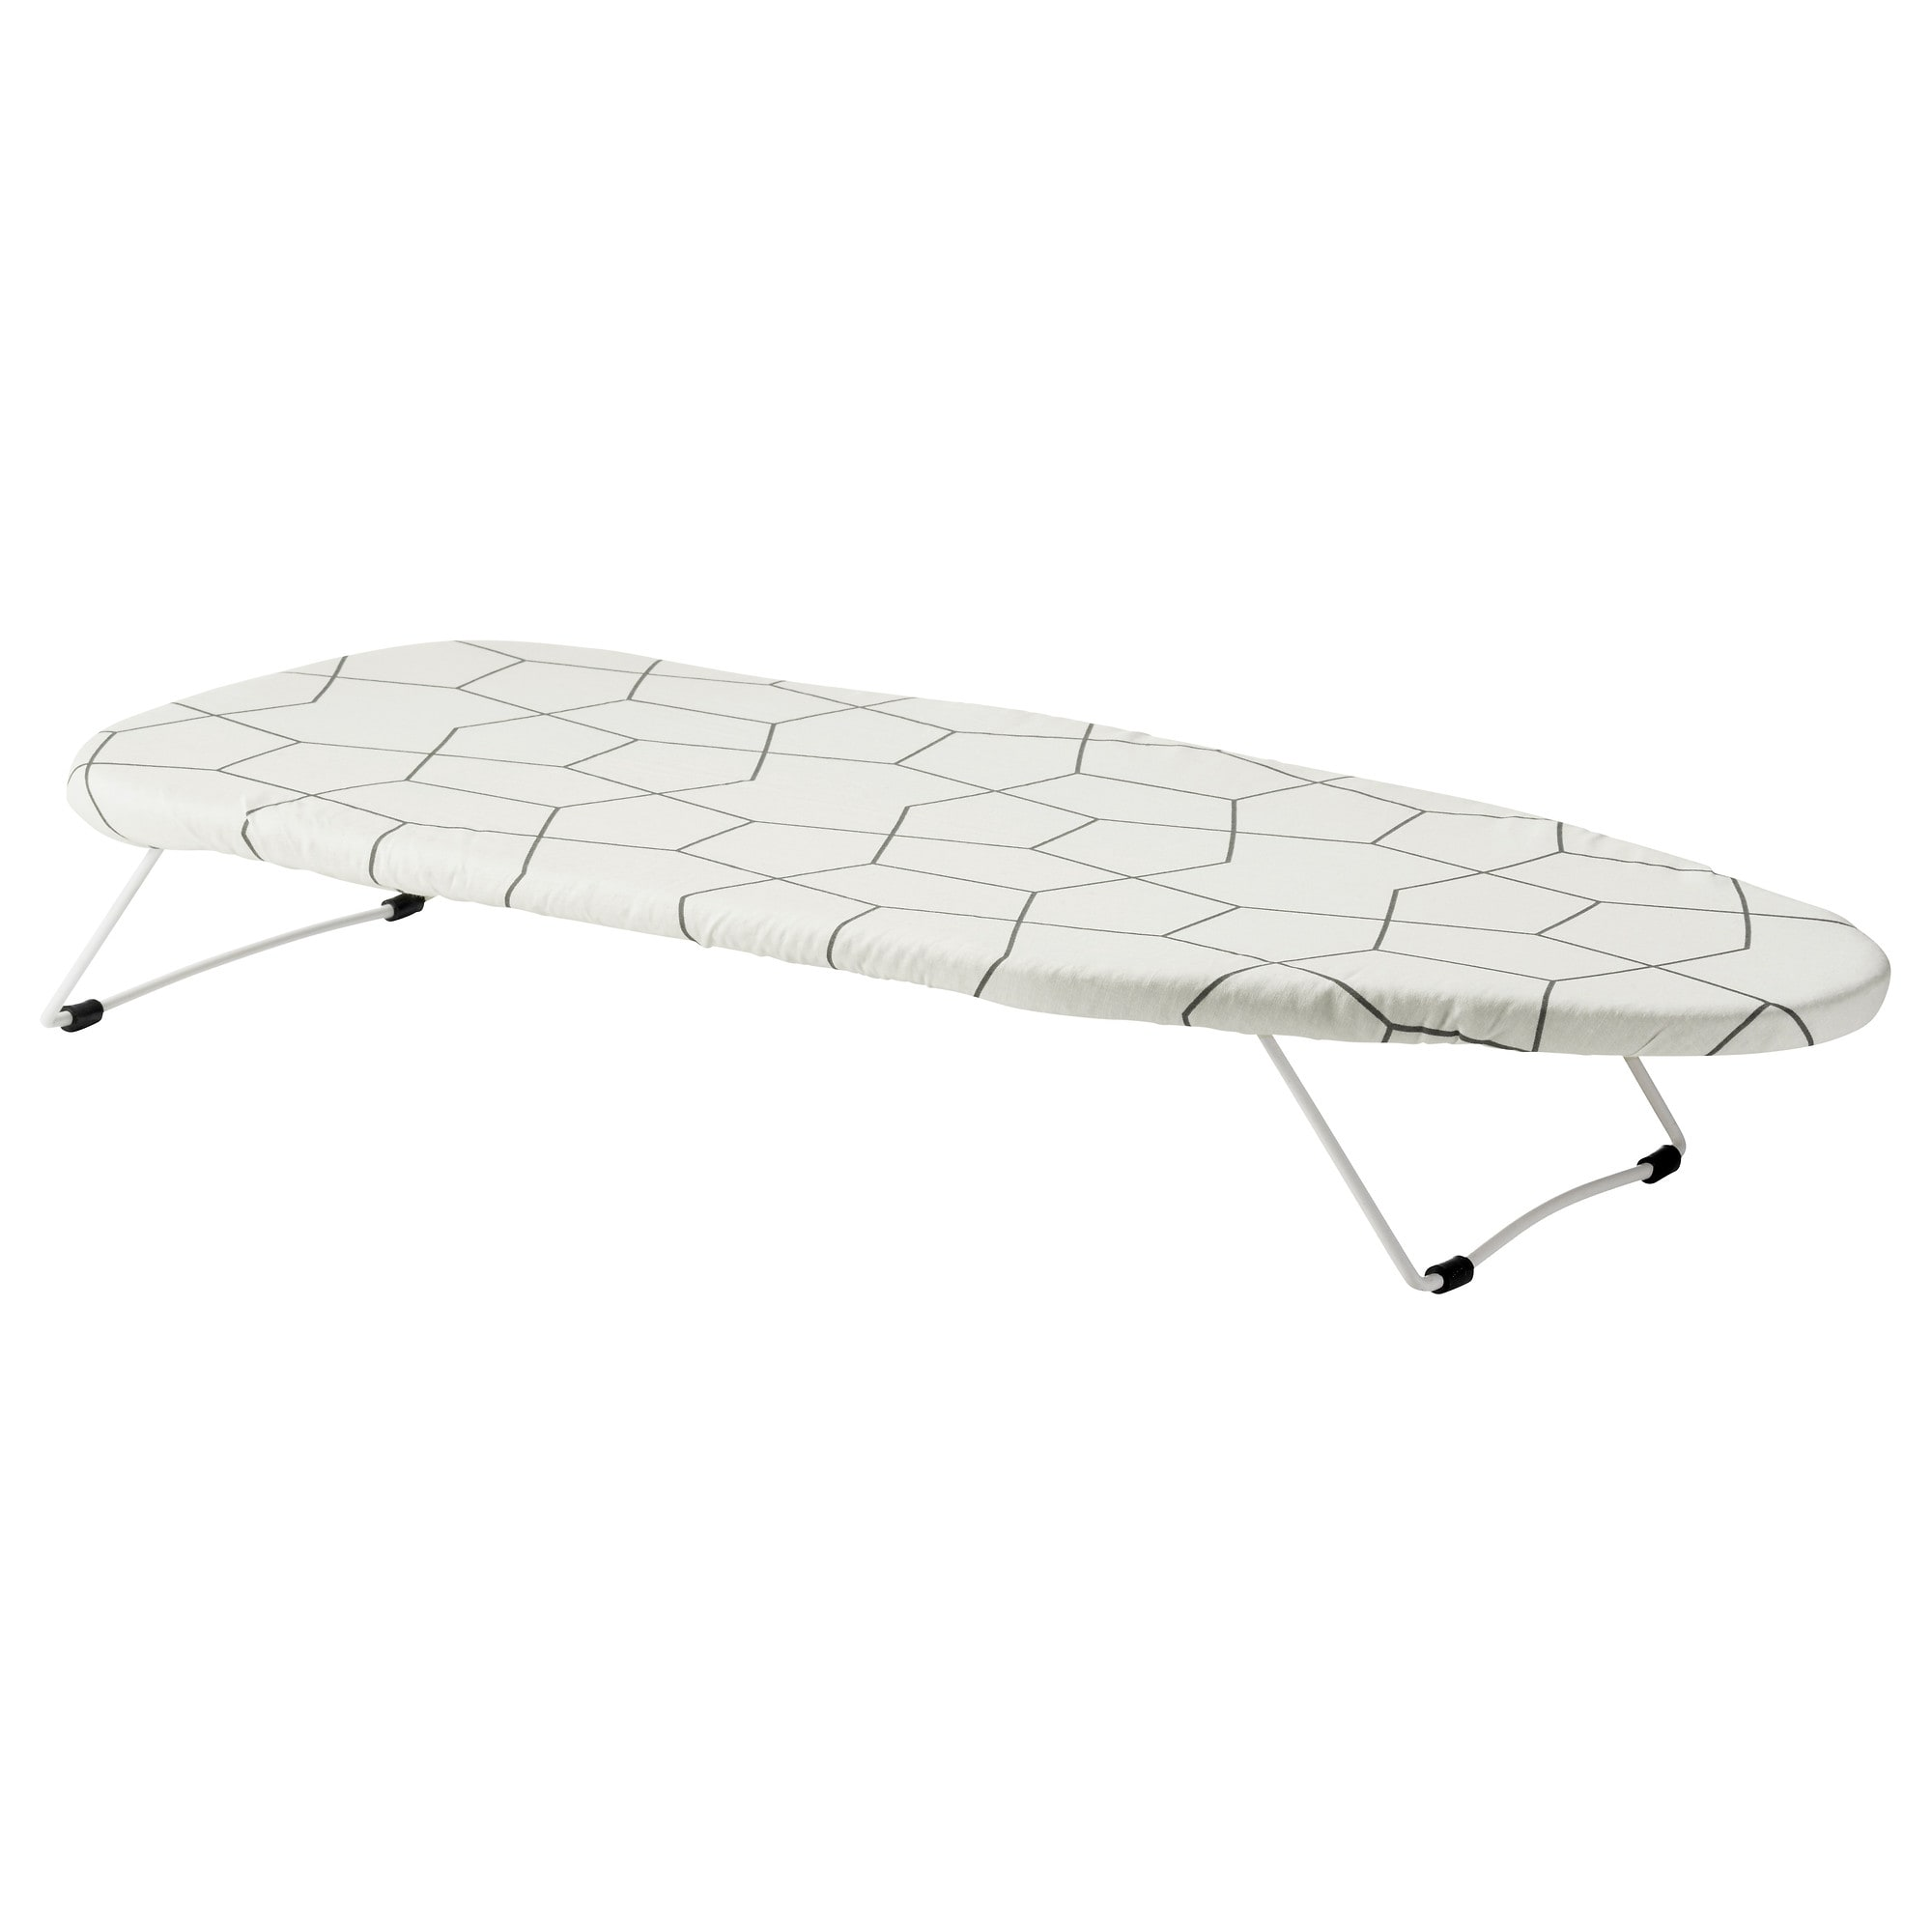 Jall Tabletop Ironing Board Ikea Tabletop Ironing Board Iron Board Mini Ironing Board